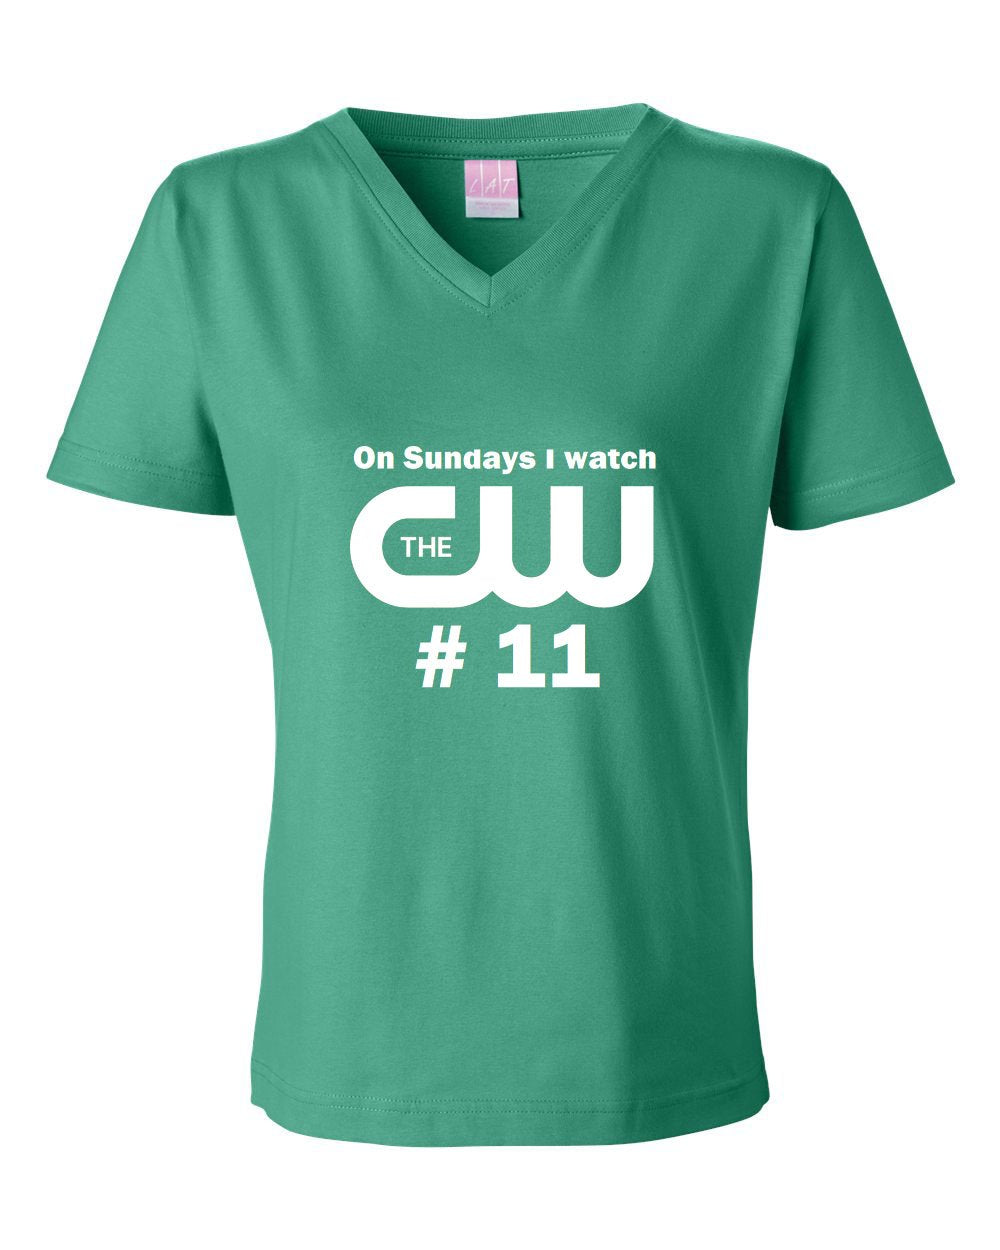 CW11 LADIES Junior Fit V-Neck